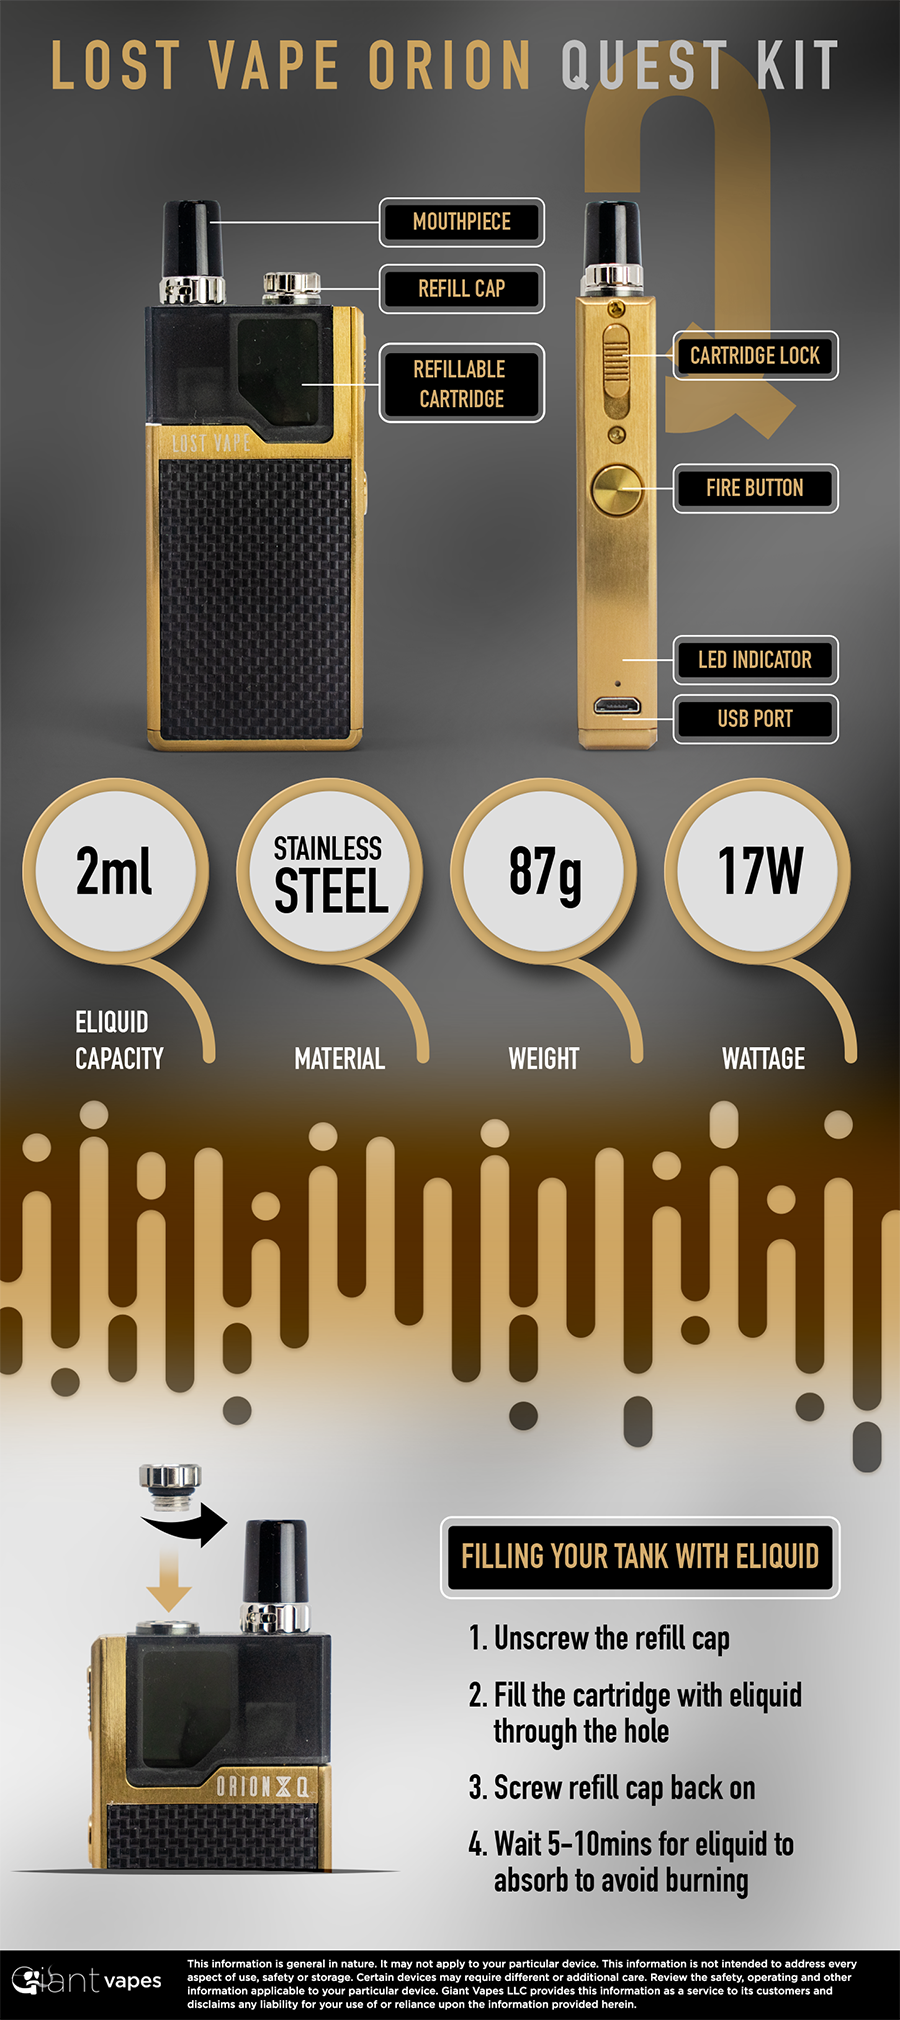 Lost Vape Orion Q Kit Infographic